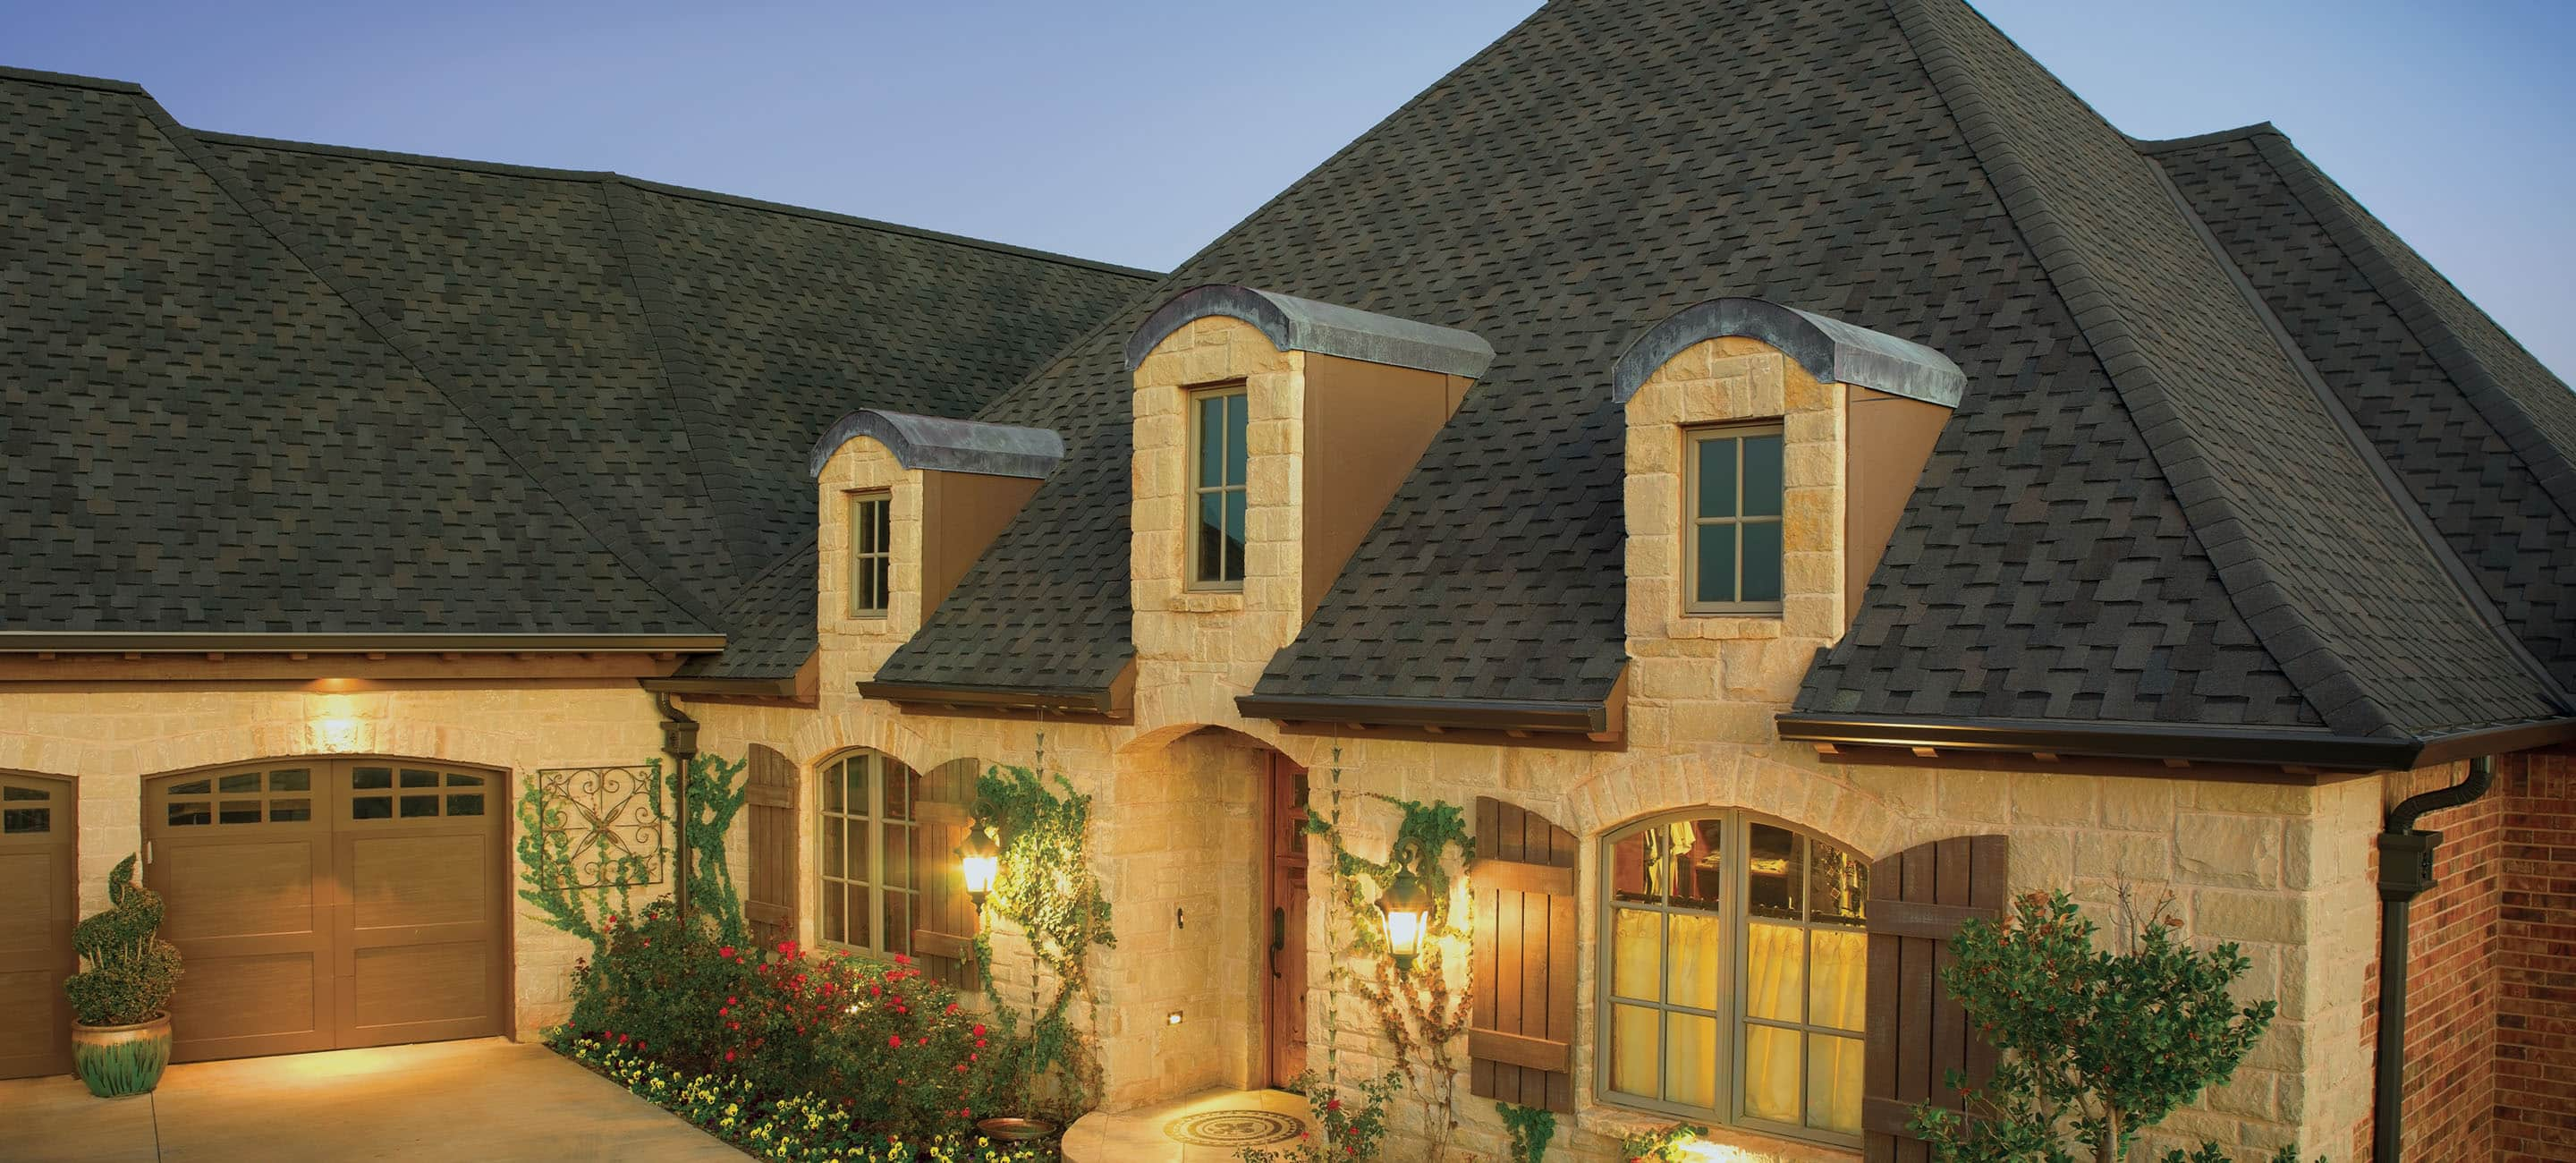 Gaf Grand Sequoia 174 Armorshield Roofing Shingles